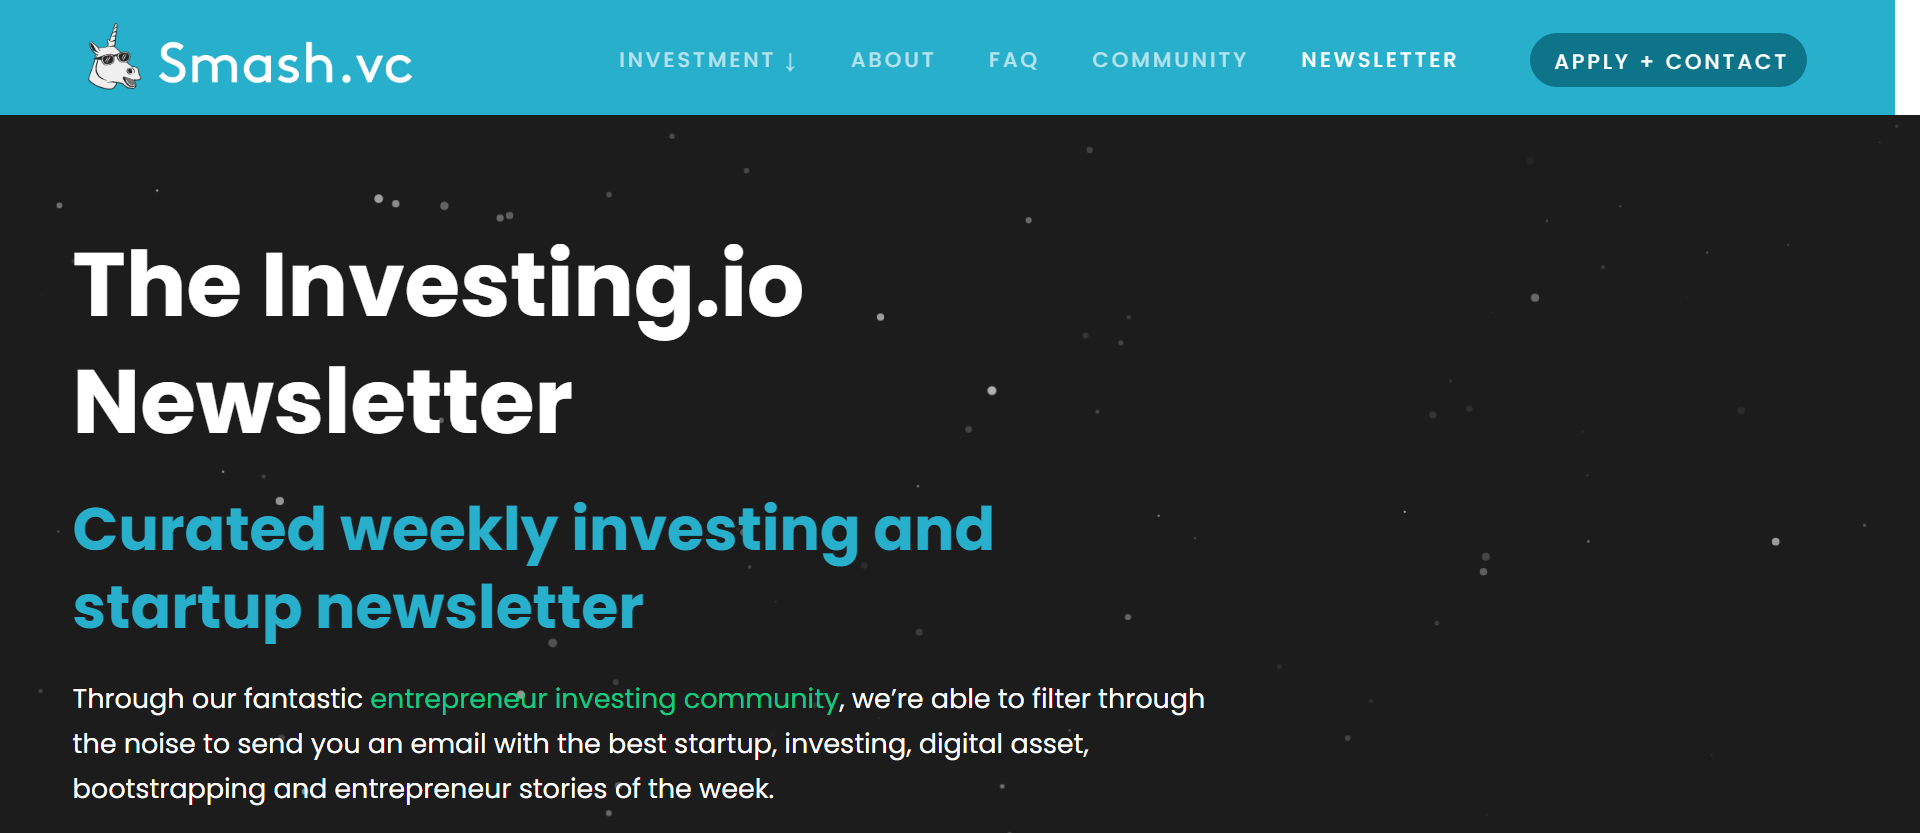 investing.io newsletter from smash.vc